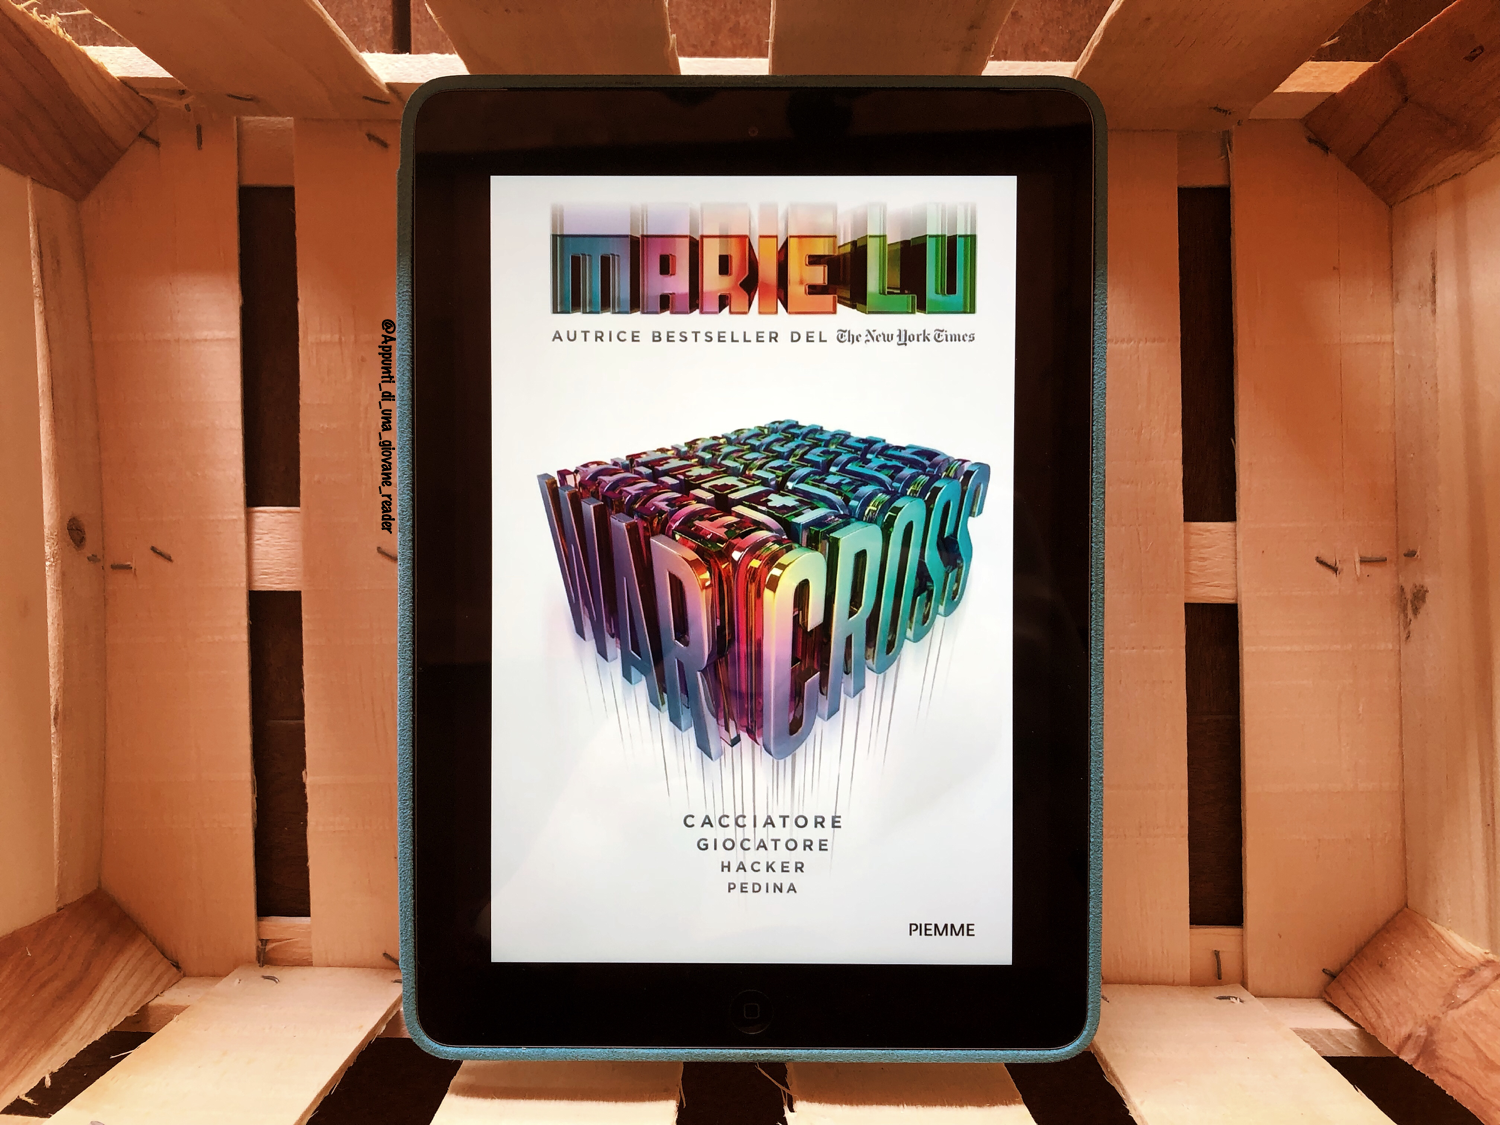 https://appuntidiunagiovanereader.blogspot.com/2019/02/recensione-warcross-di-marie-lu.html